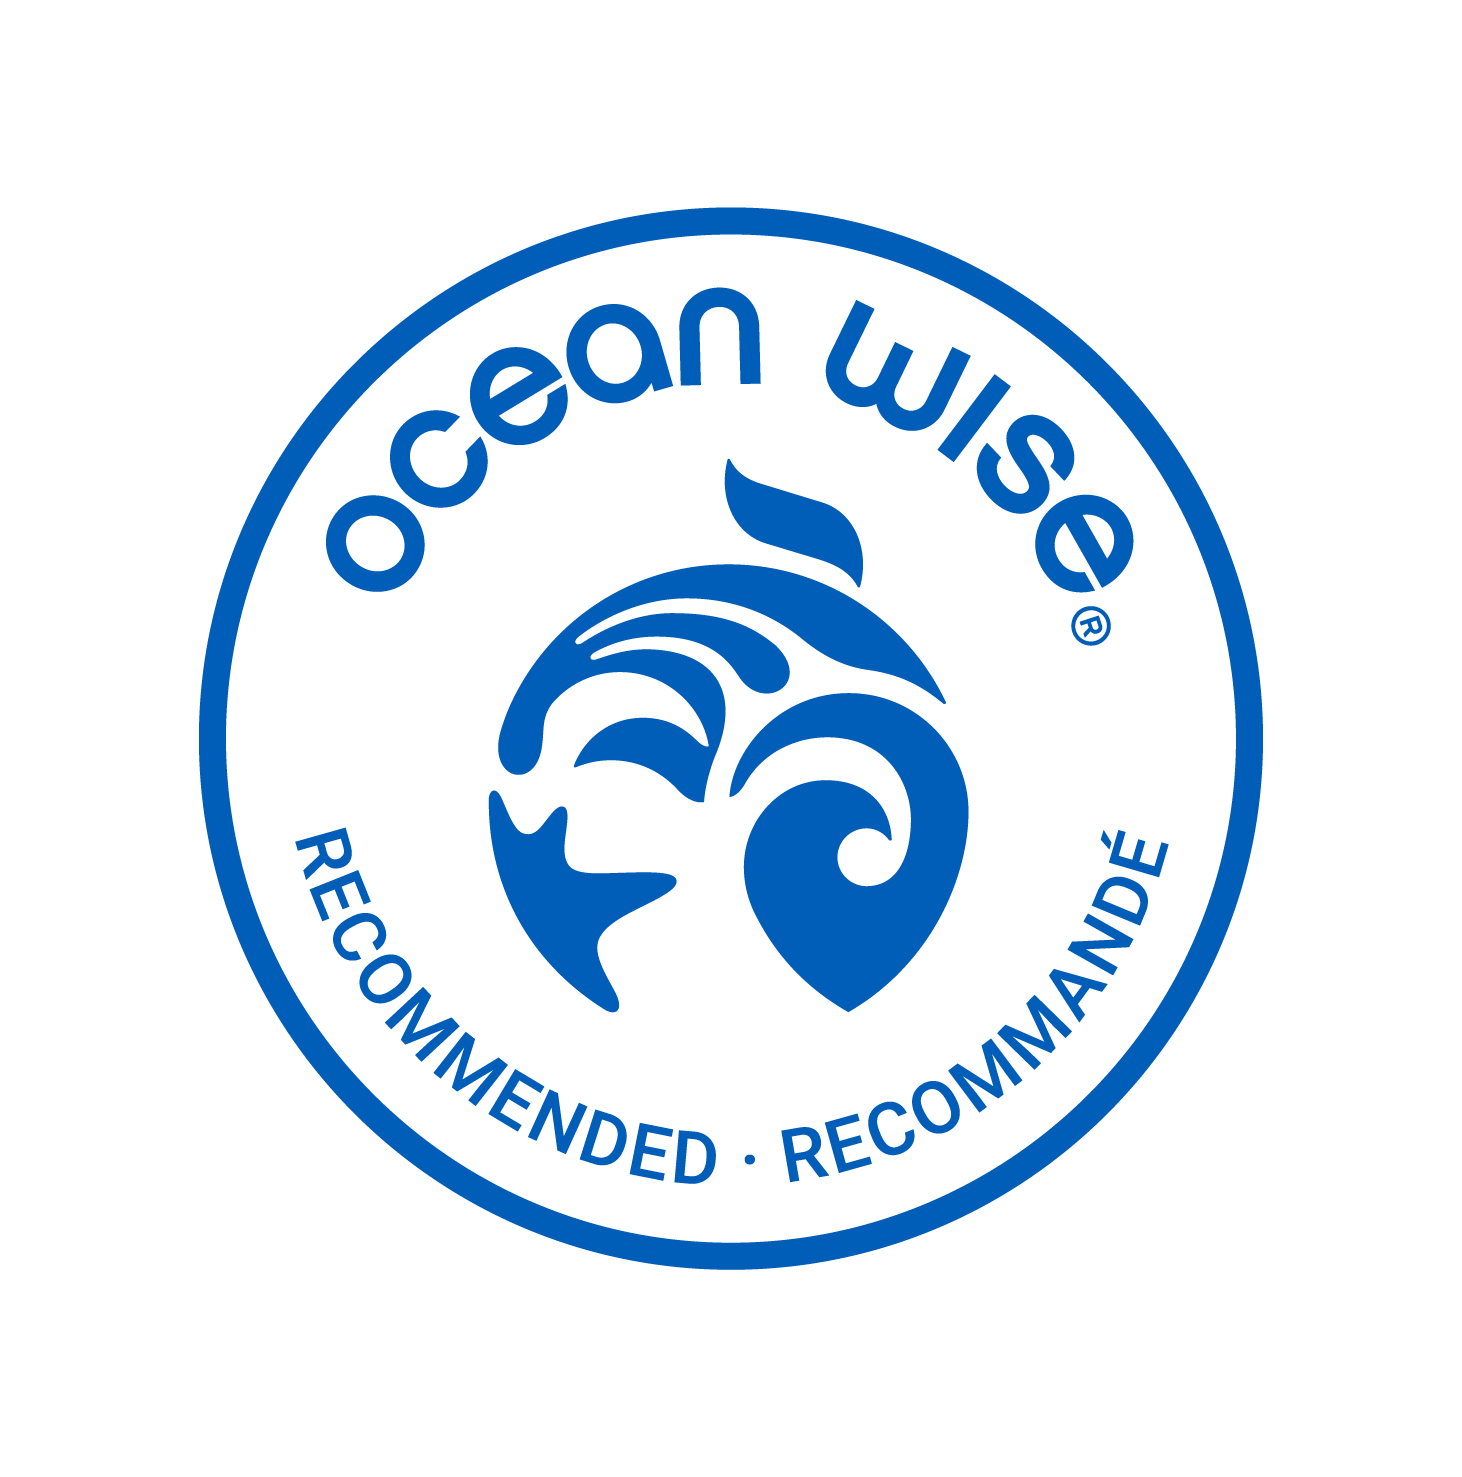 ocean wise logo for the best seafood in vancouver